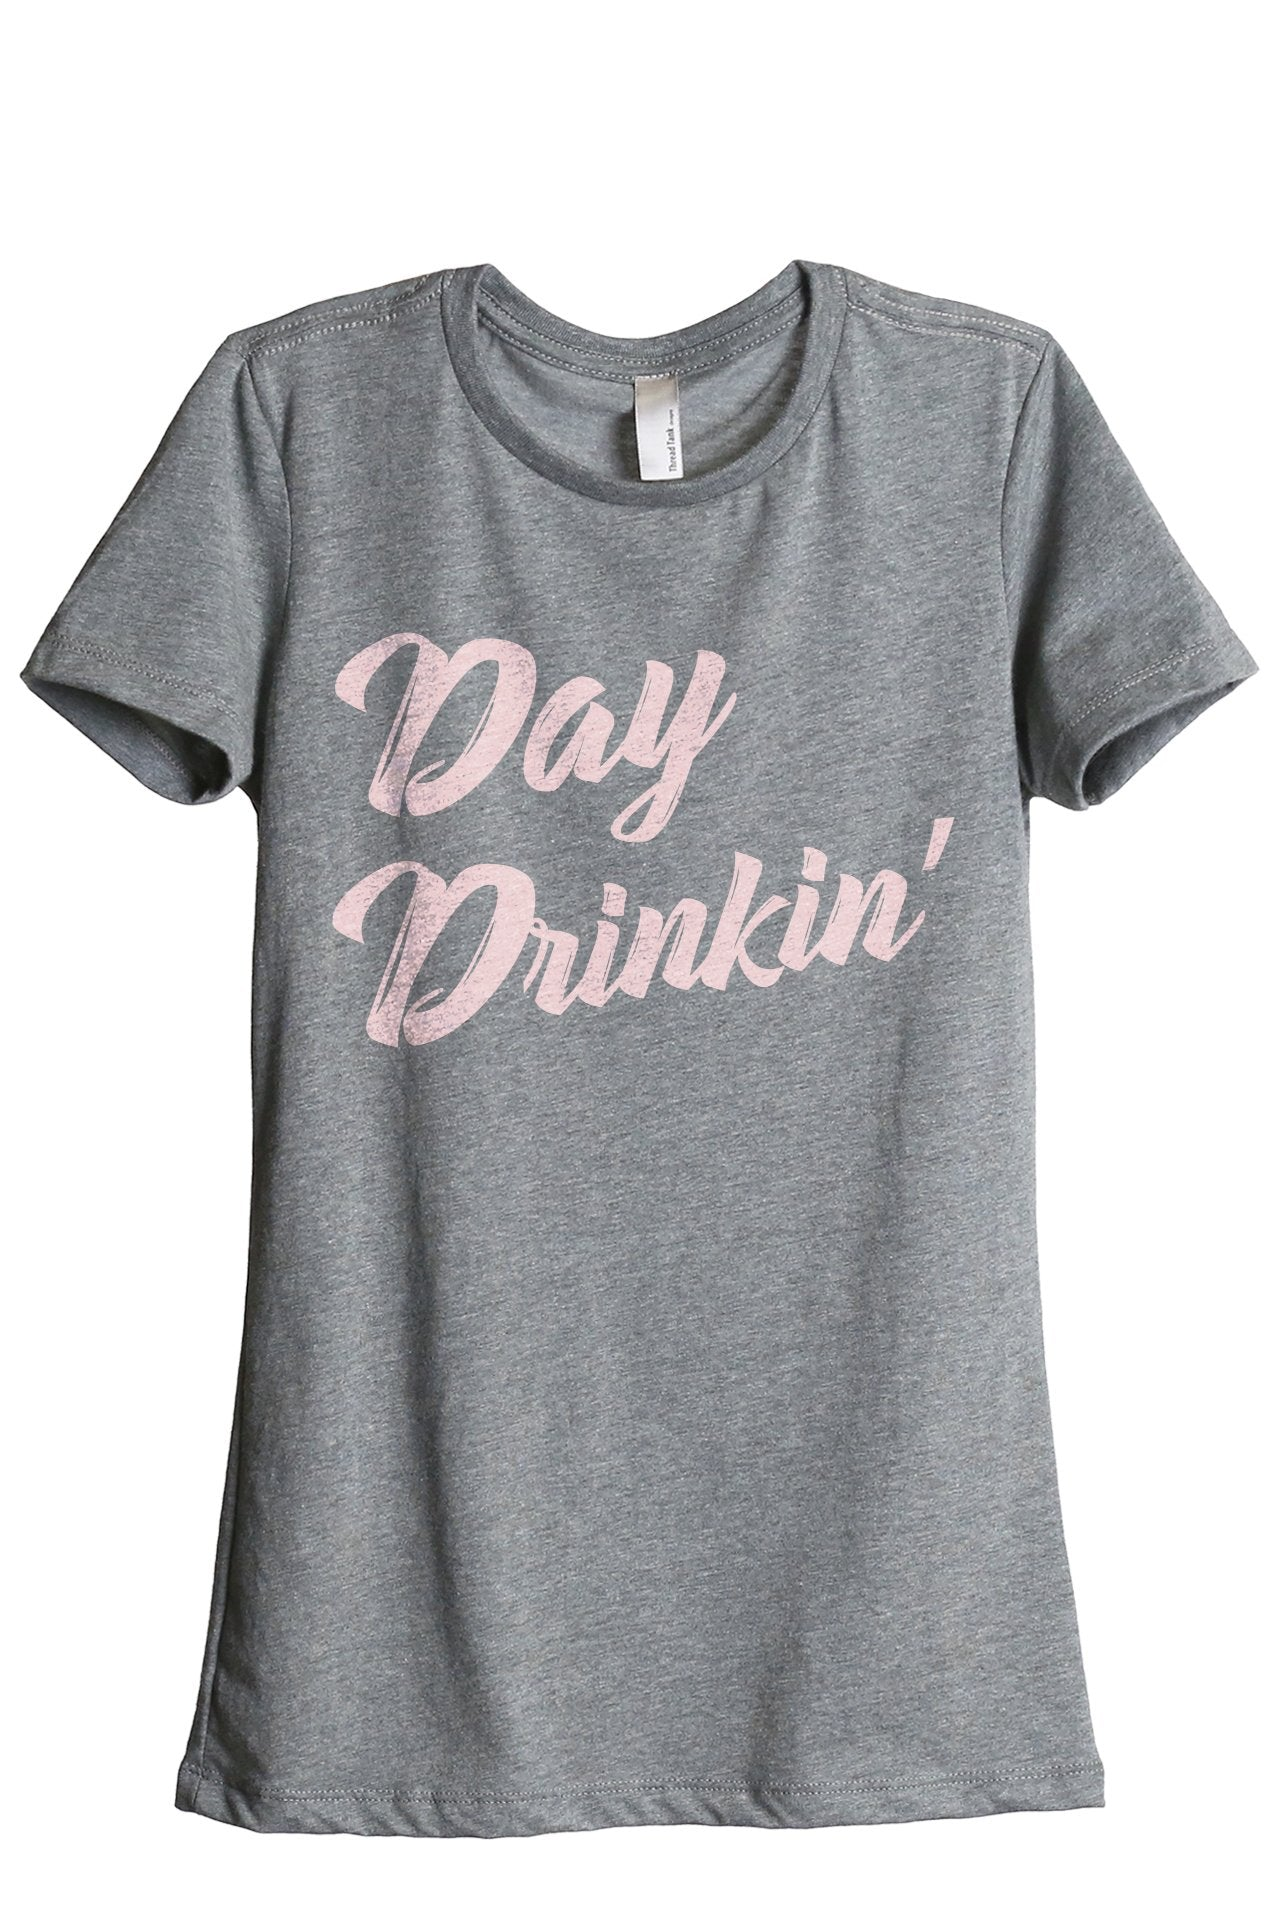 Day Drinkin - Thread Tank | Stories You Can Wear | T-Shirts, Tank Tops and Sweatshirts